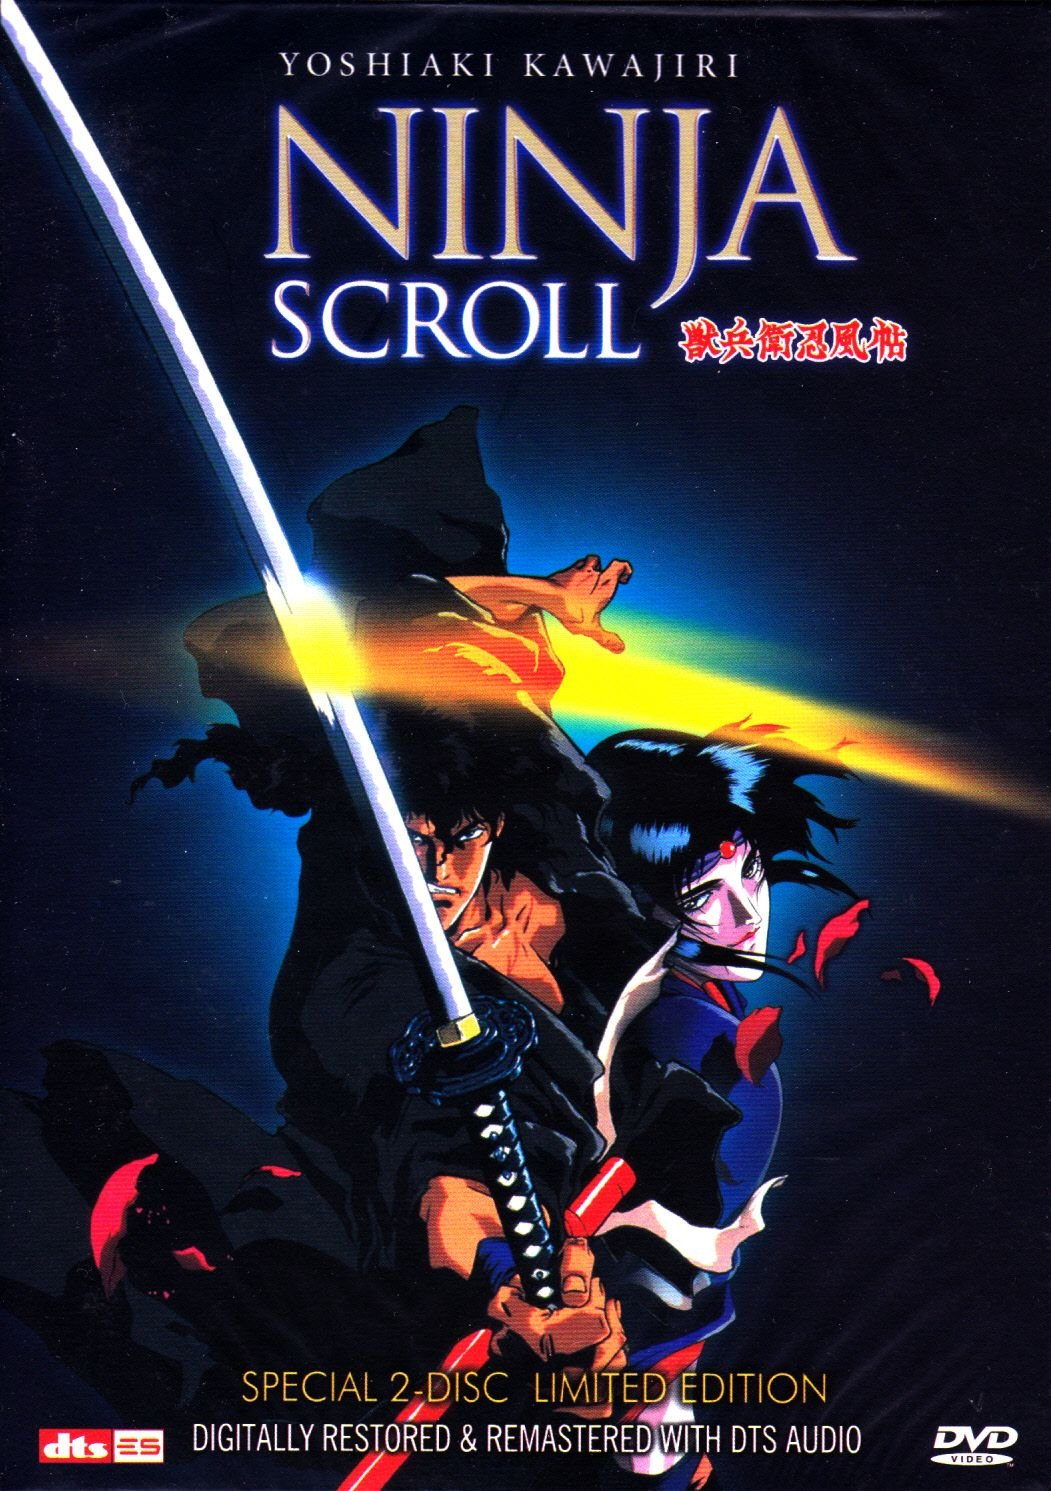 Amazon.com: Ninja Scroll DVD Import Korea: Yoshiaki Kawajiri ...